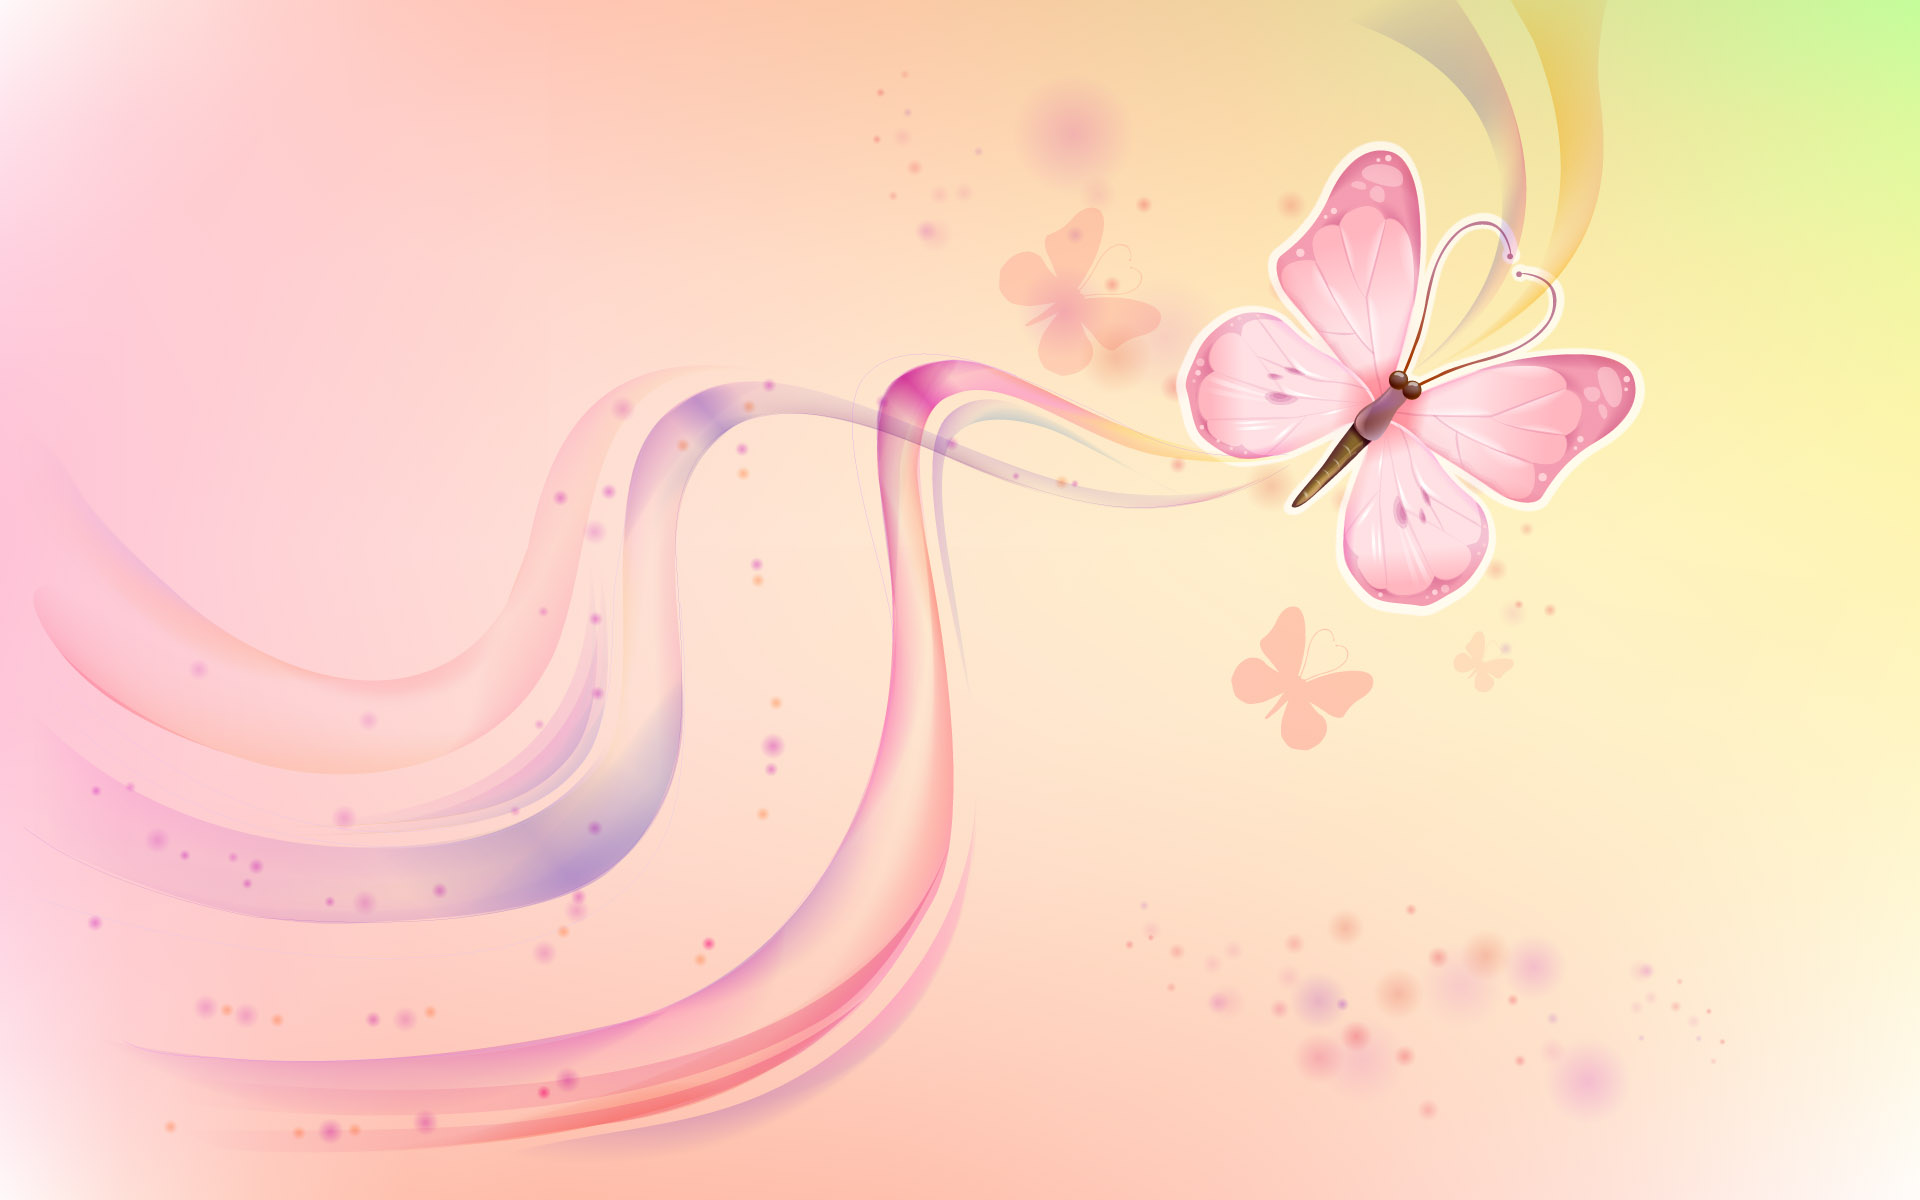 Colorful high-resolution background 23478